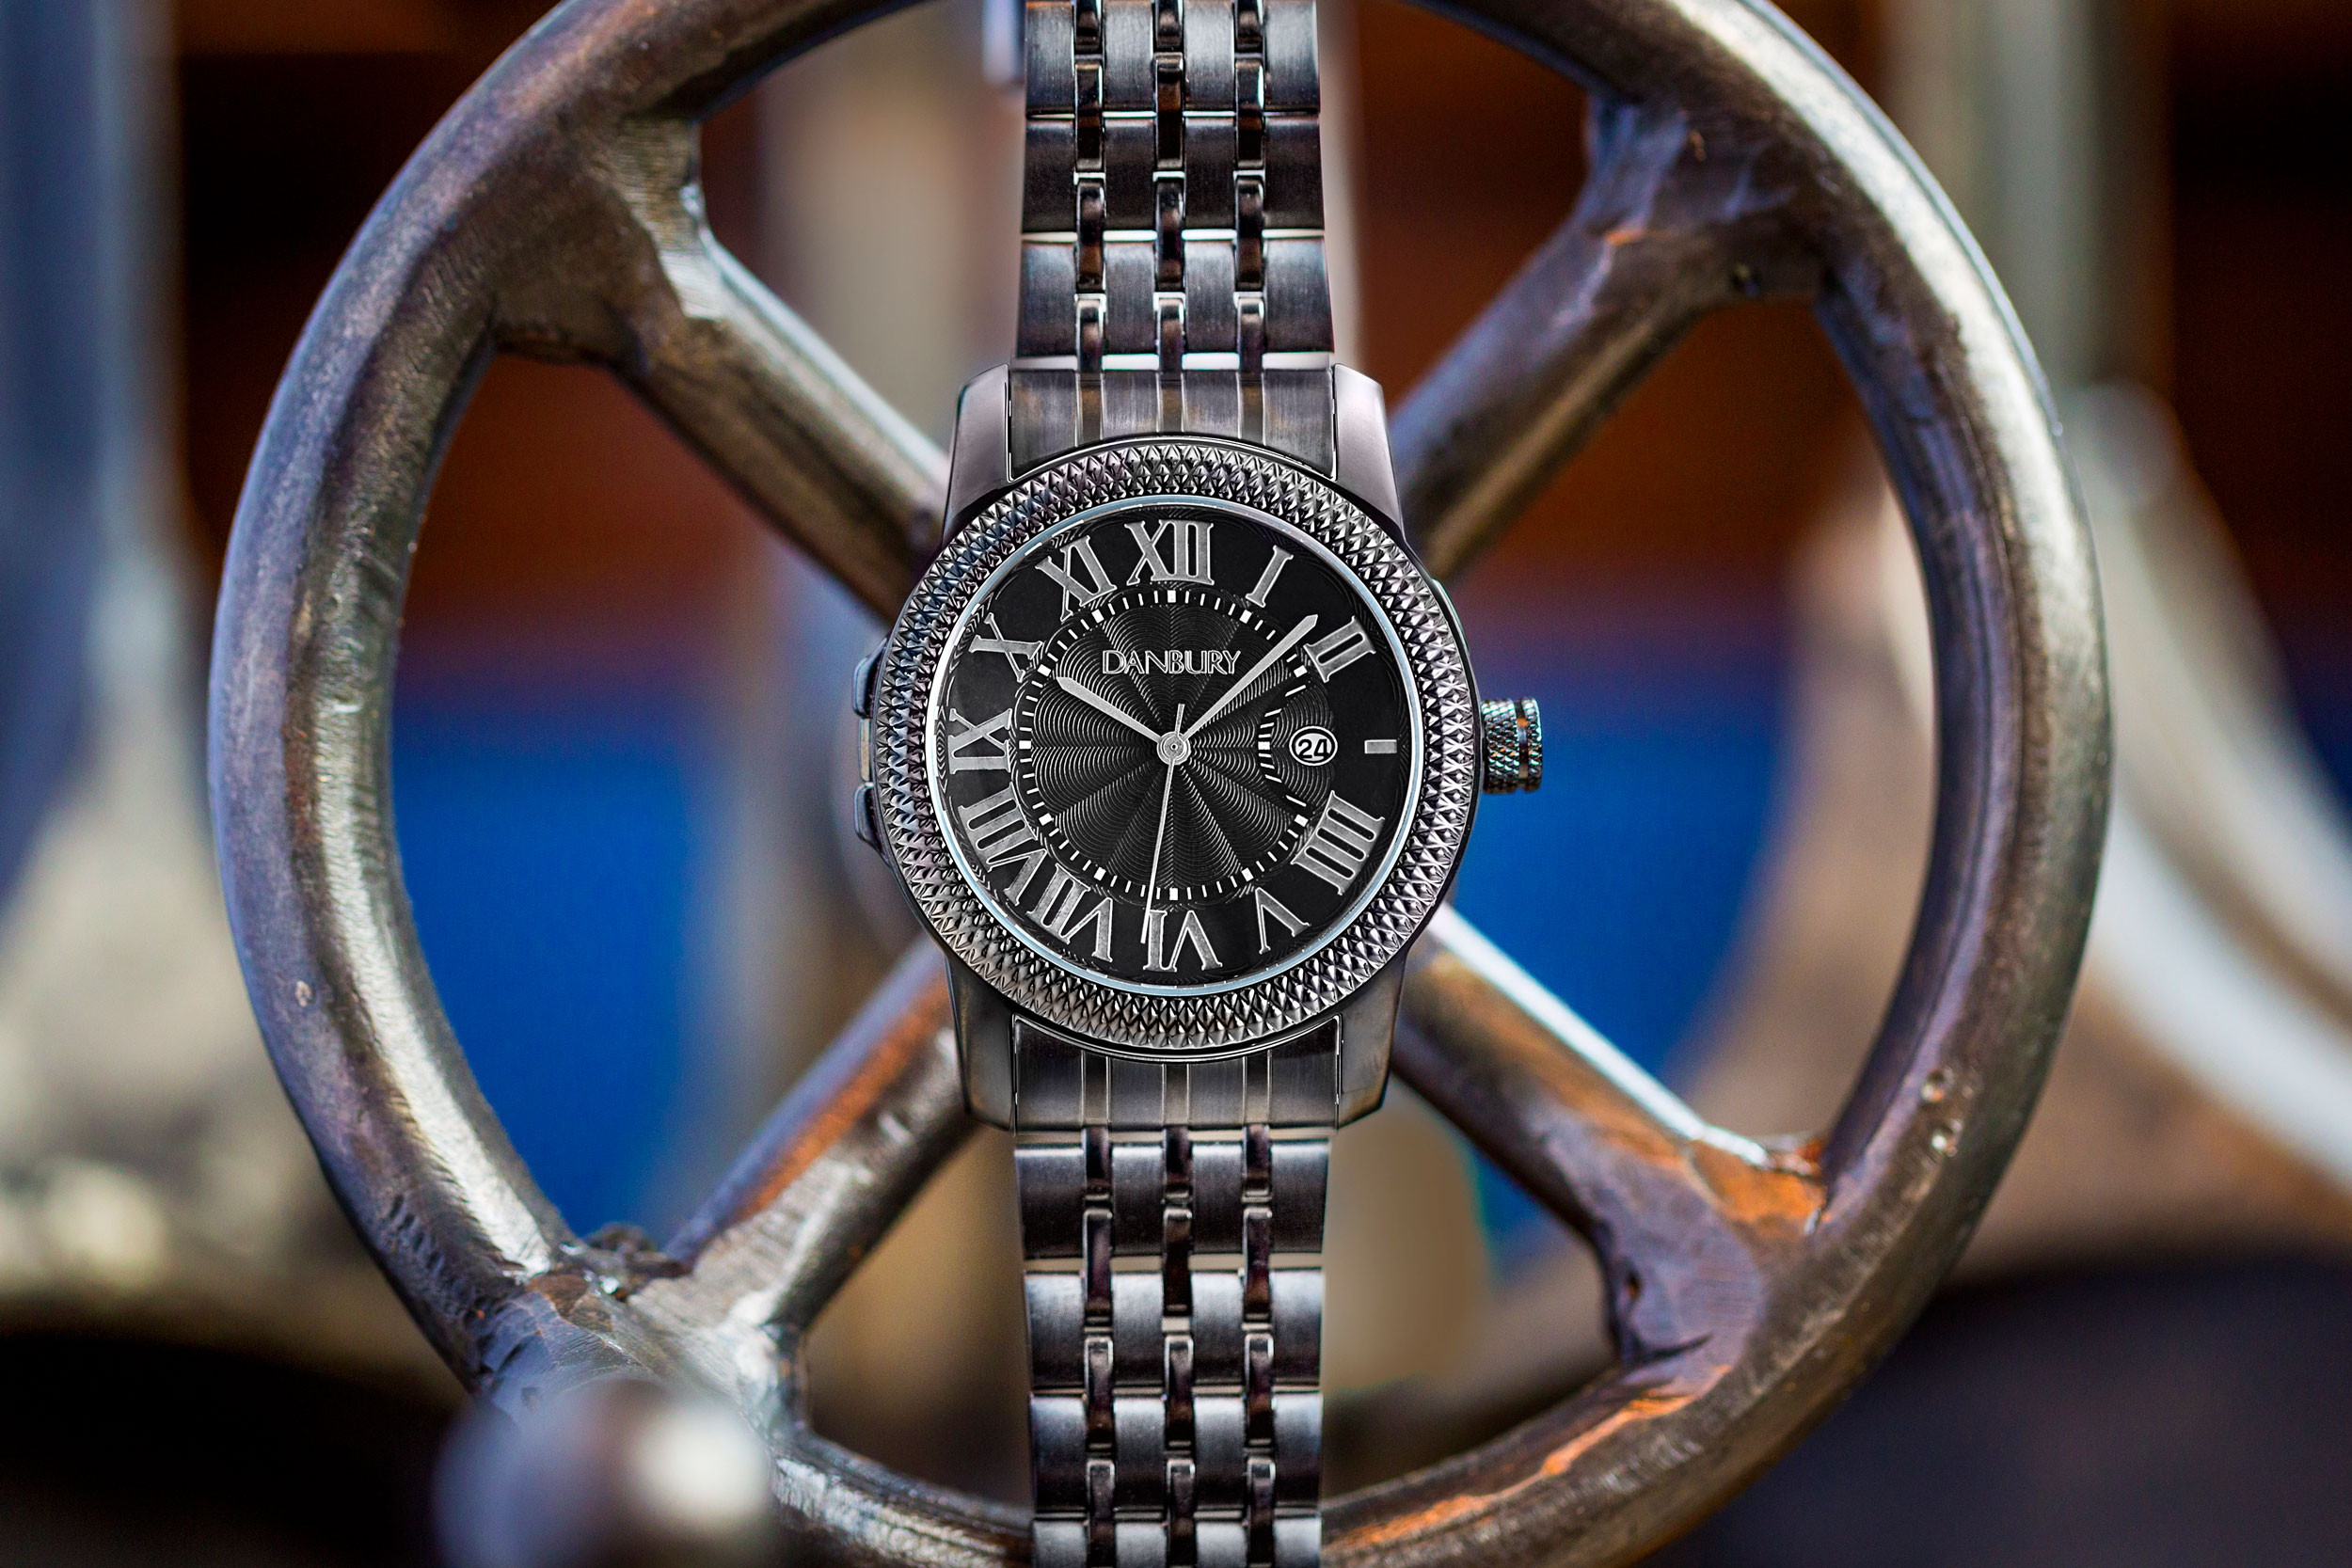 commercial product photography image of watch on steering wheel